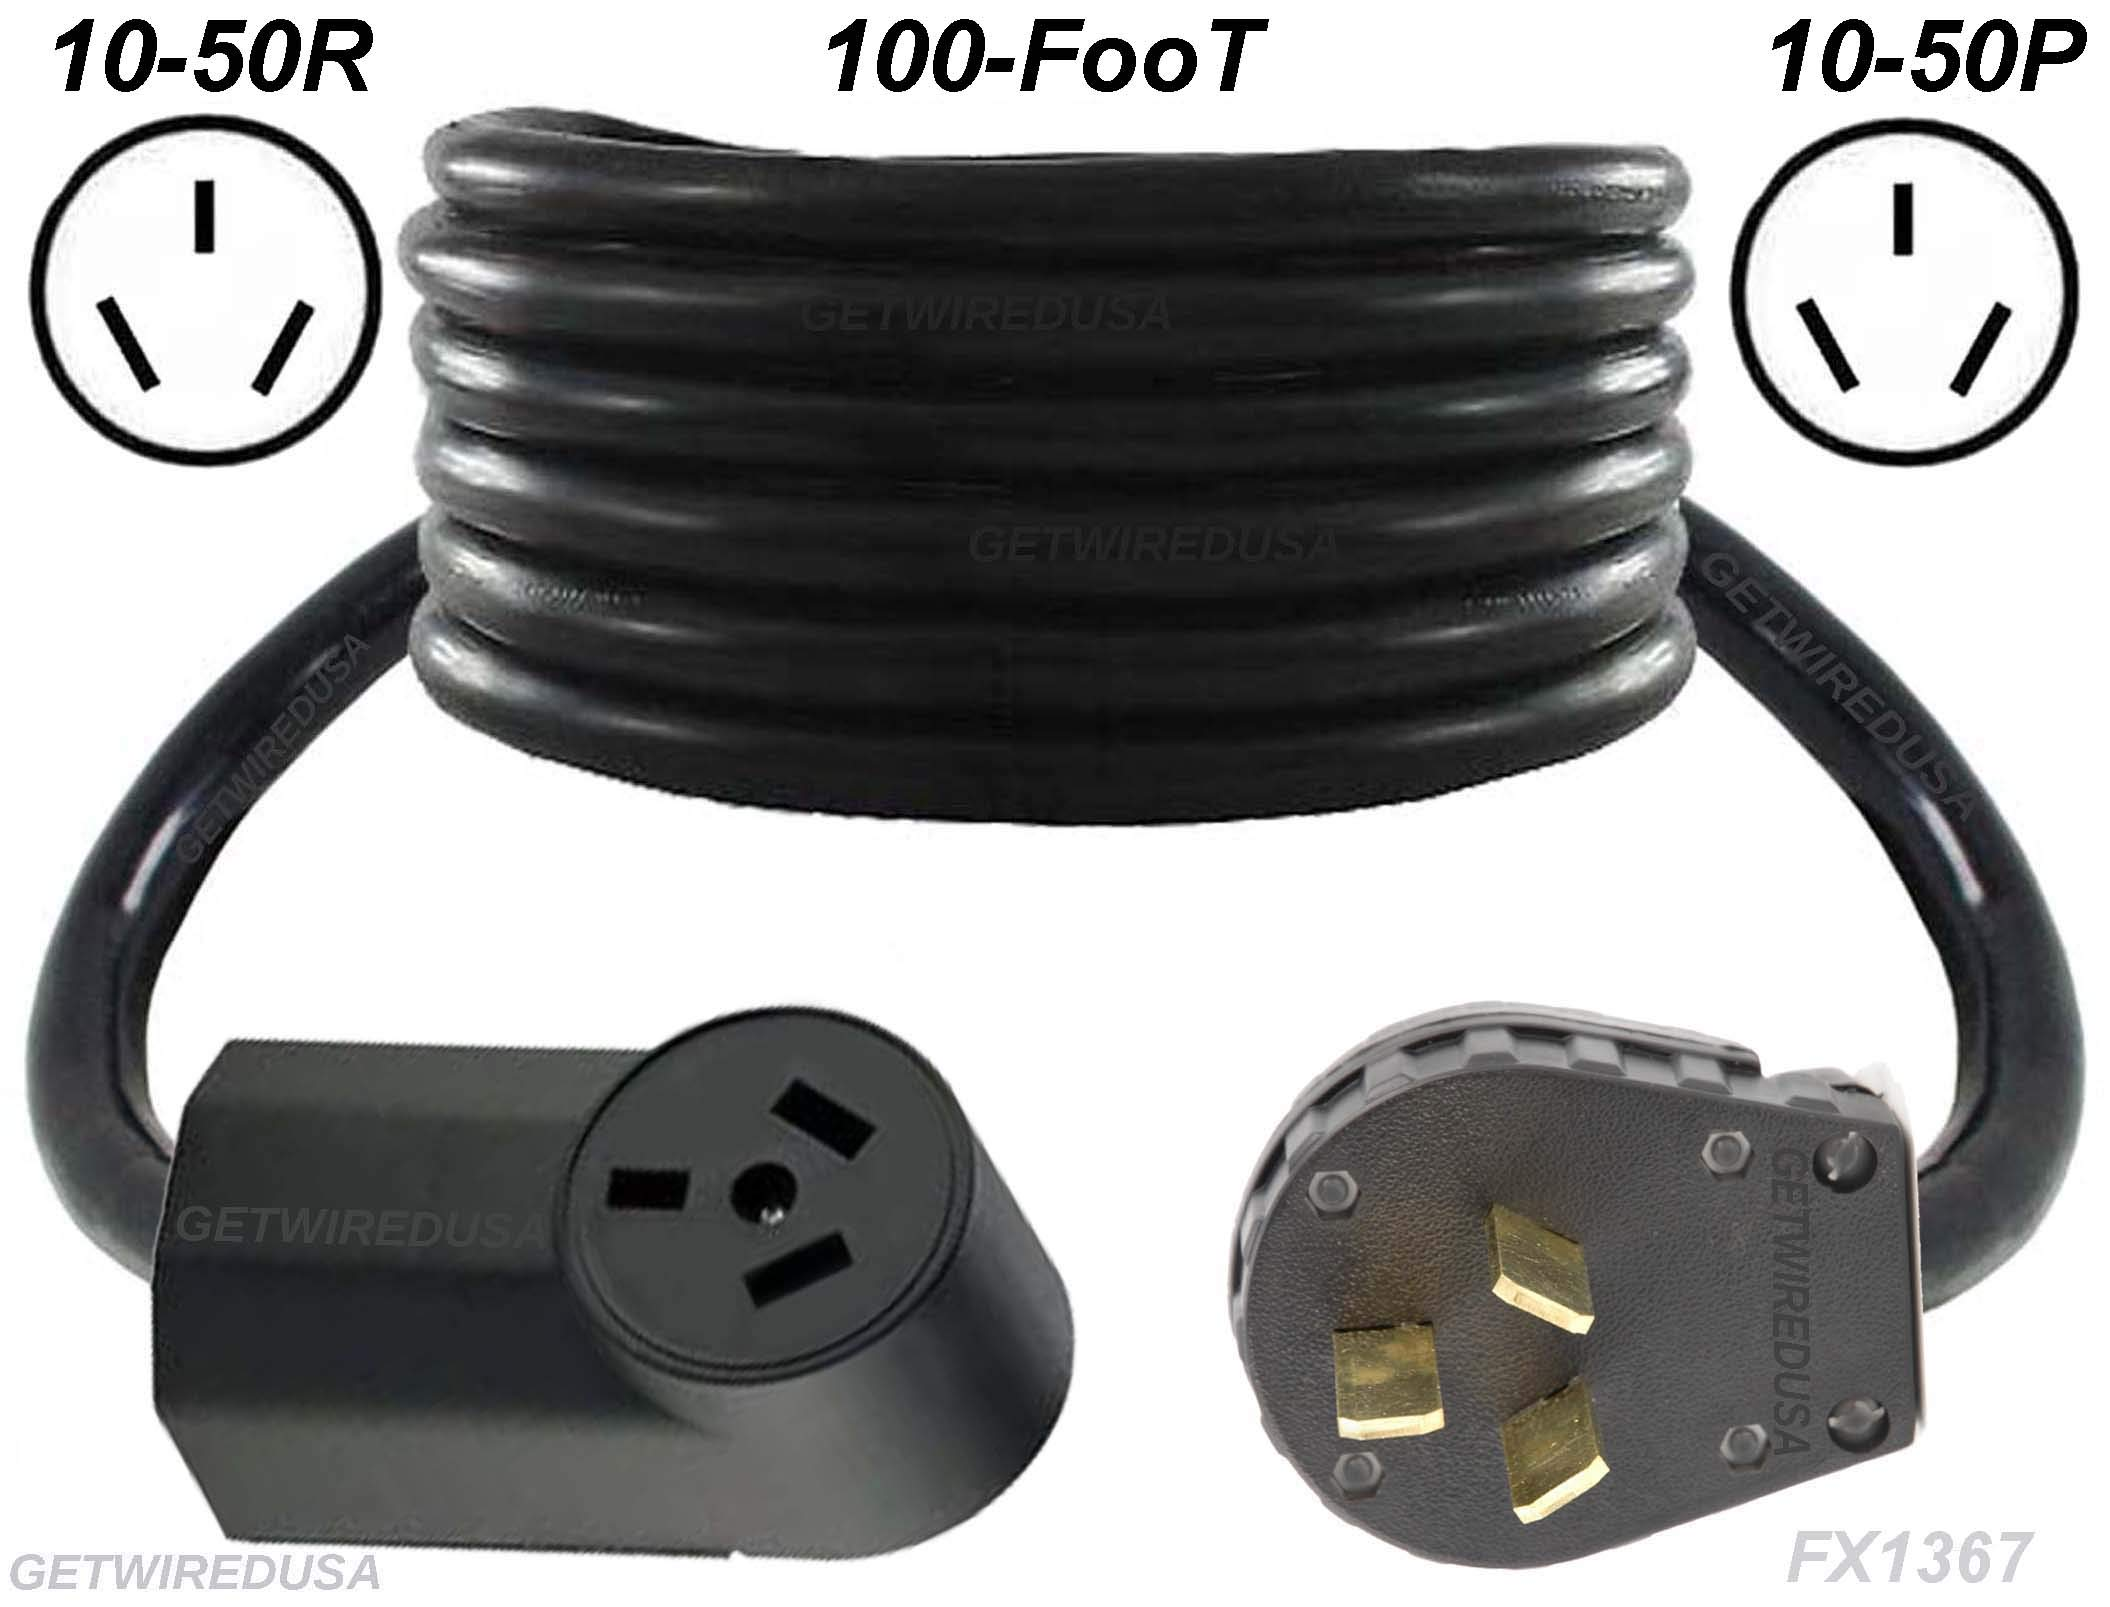 Range, Stove, Oven, 100-FT Extension Cord 10-50P Male 3-Pin Plug To 10-50R Female Receptacle, Heavy Duty, Real Copper Wire, 10/3 10AWG 10-Gauge, NEMA, 100-Feet Long, Made In American, FX1367-R by getwiredusa